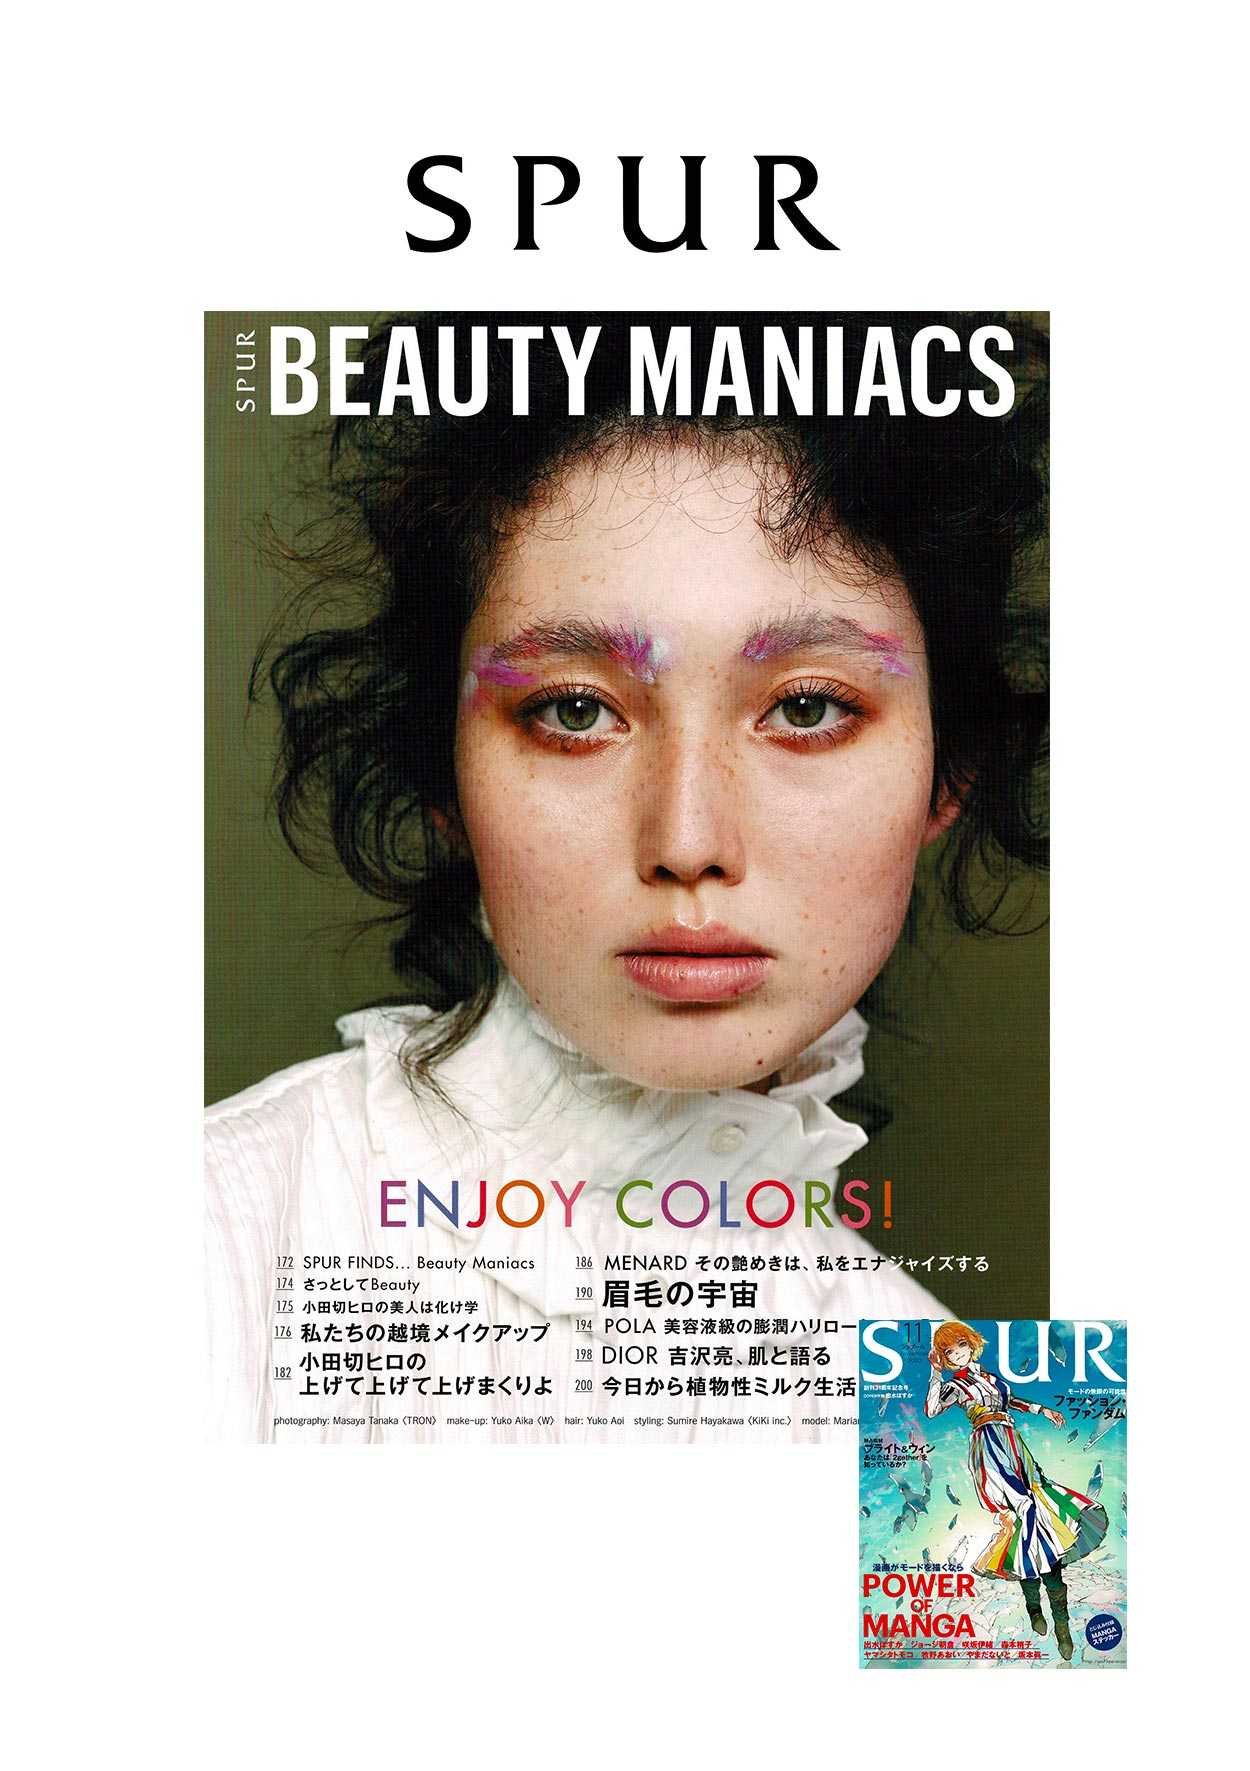 melampo press on spur Japan magazine - photo 1